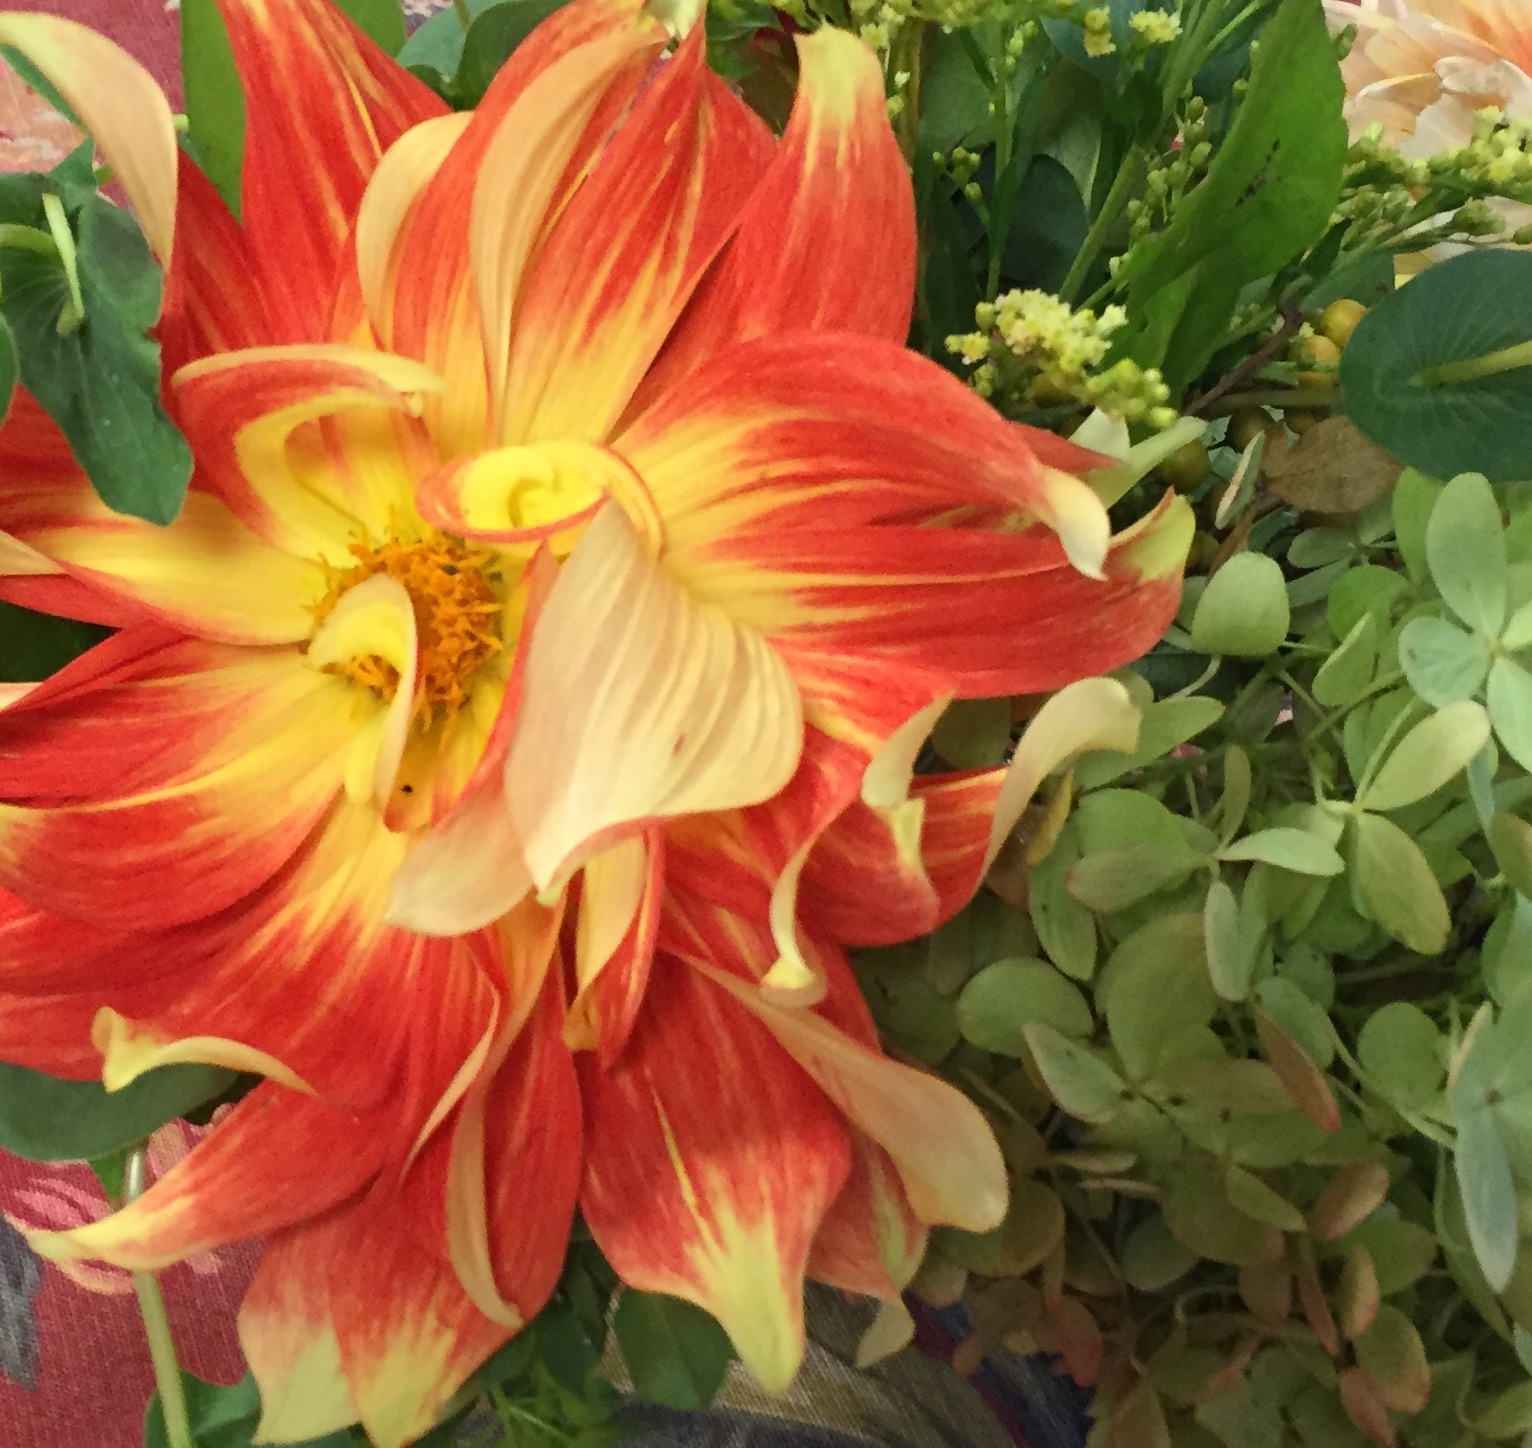 A variegated dahlia grown by my neighbor for his daughter's wedding